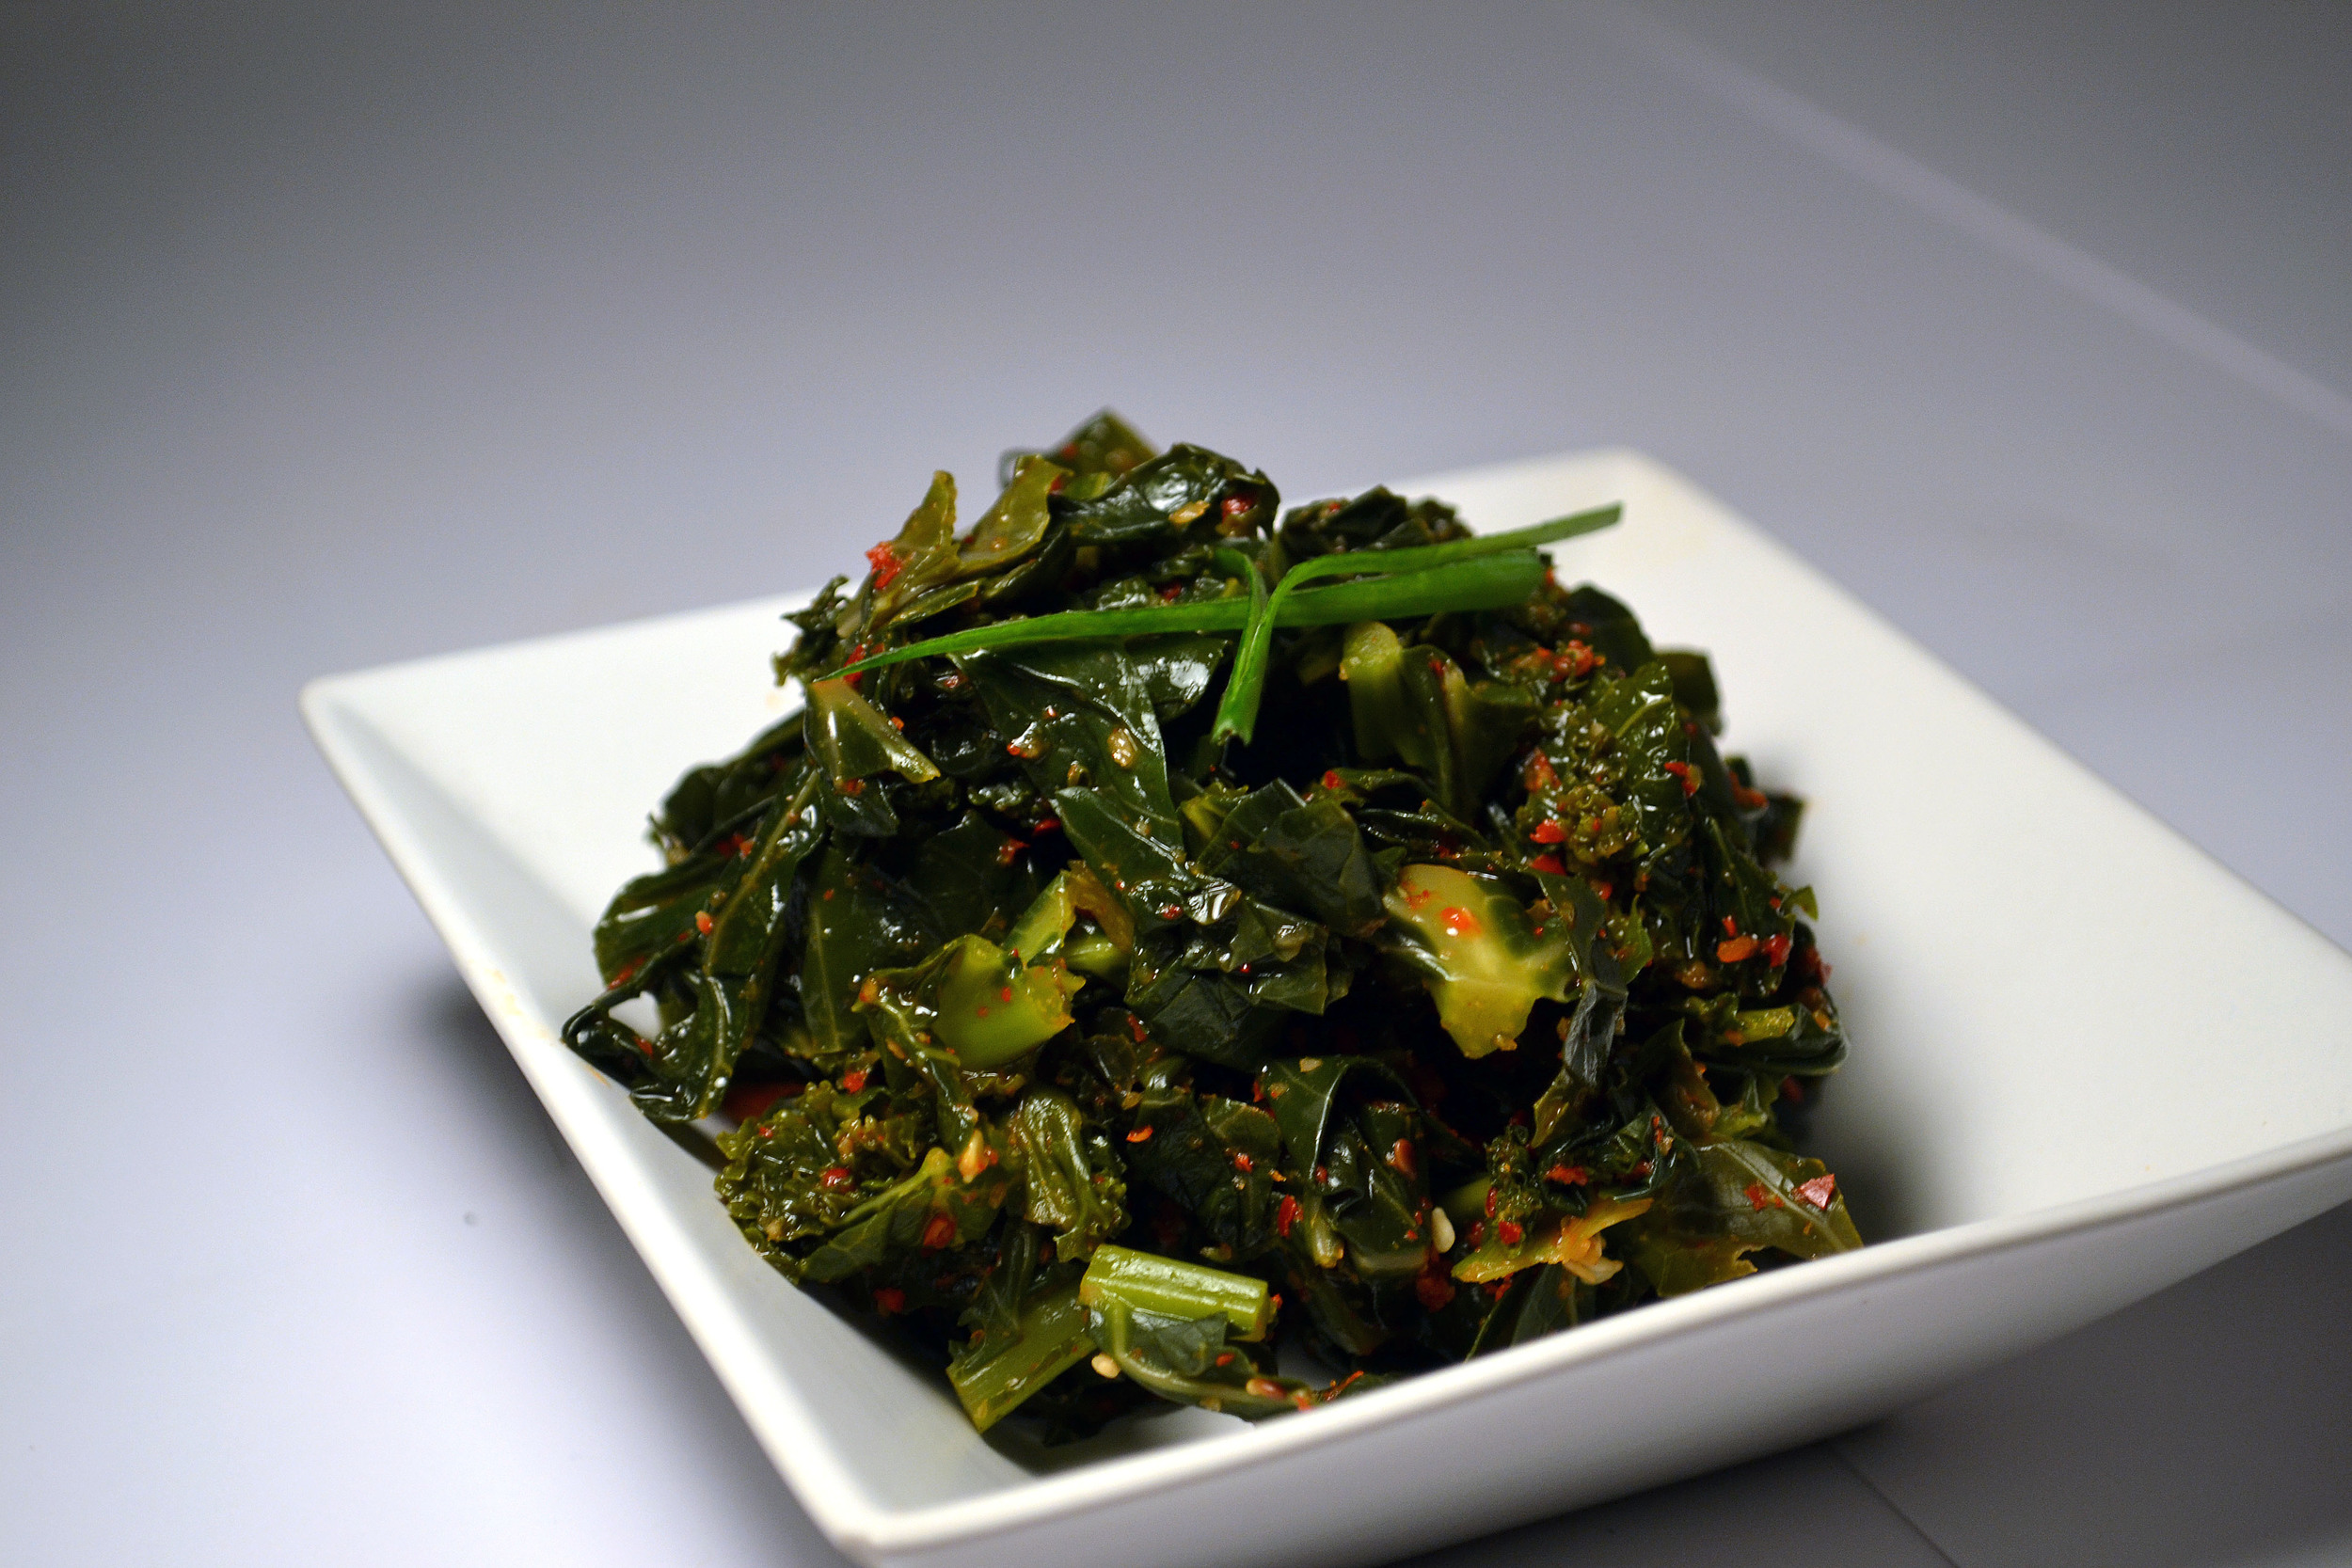 KALE KIMCHI:One of the densest and nutrient packed vegetables, Kale Kimchi is a super food. We pulverize the hard middle stem and mix it in the sauce, to make sure you get your fiber!